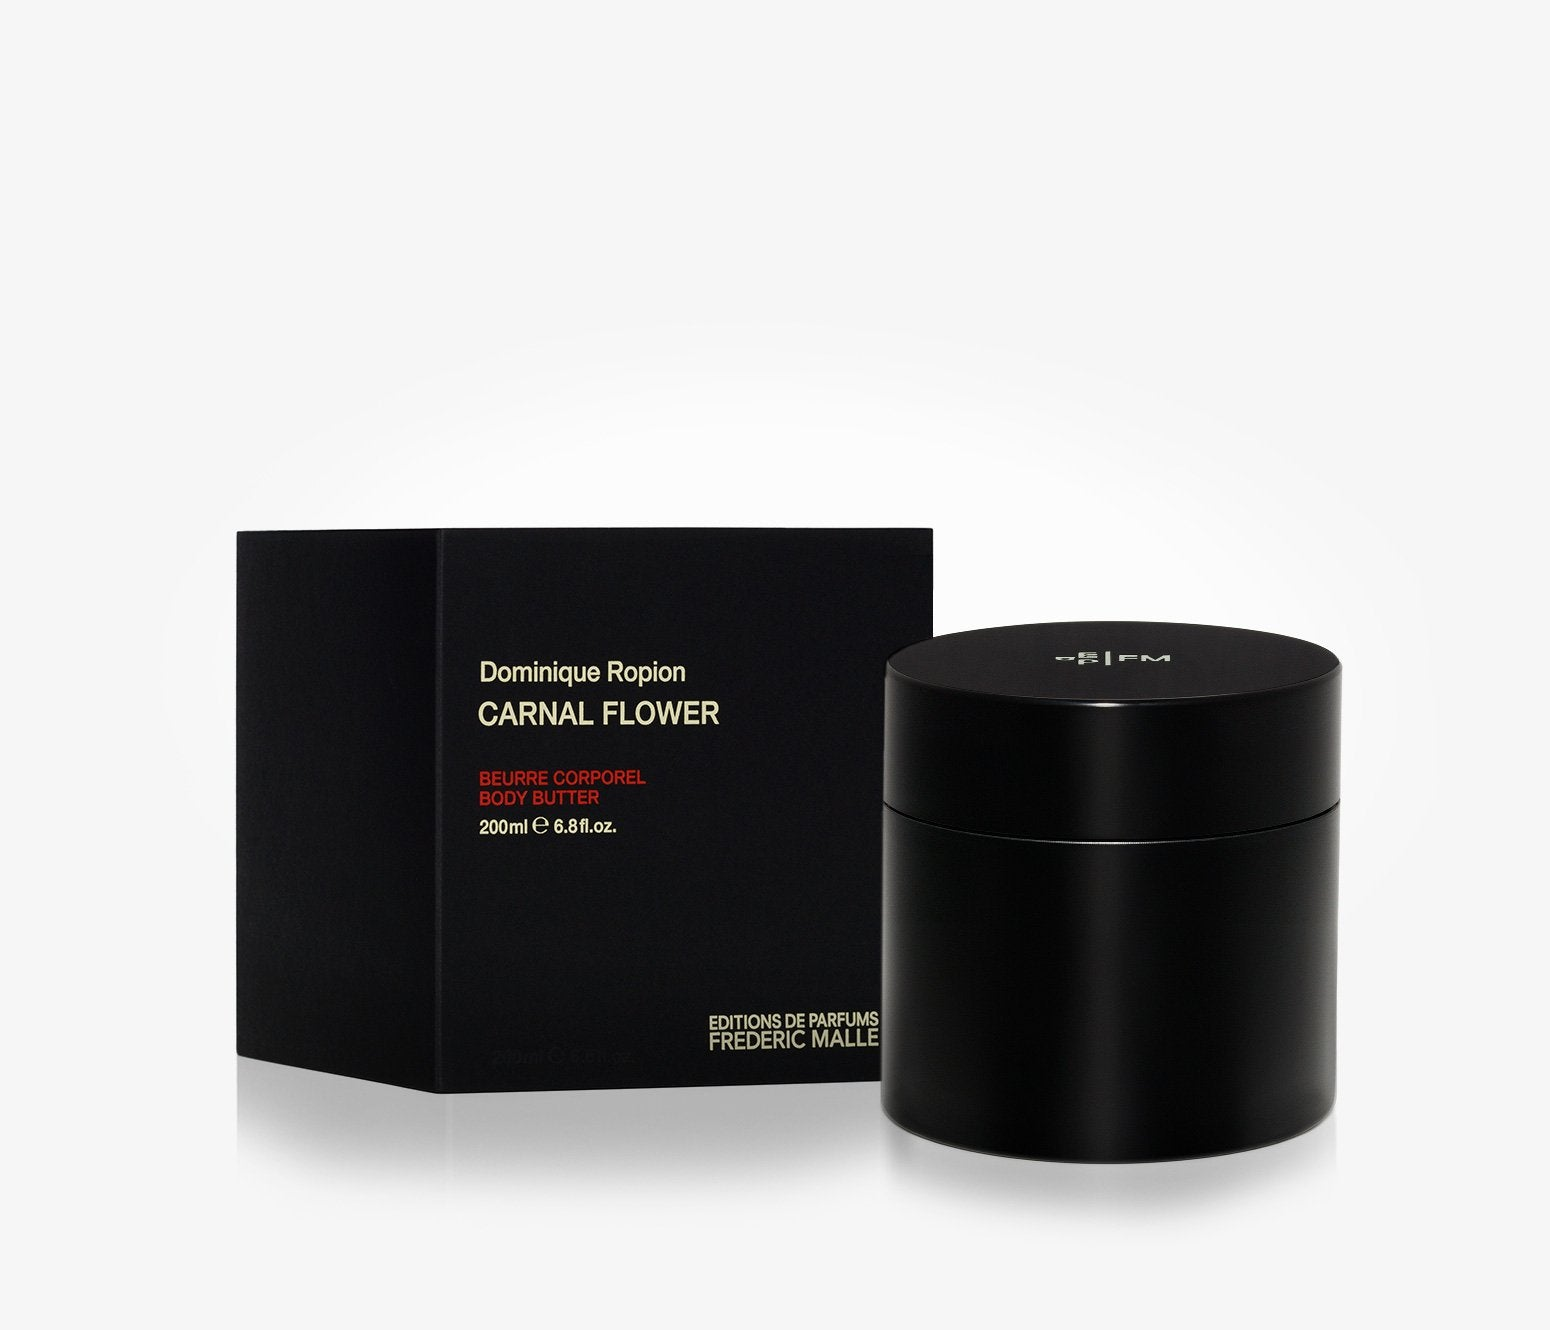 Frederic Malle - Carnal Flower Body Butter